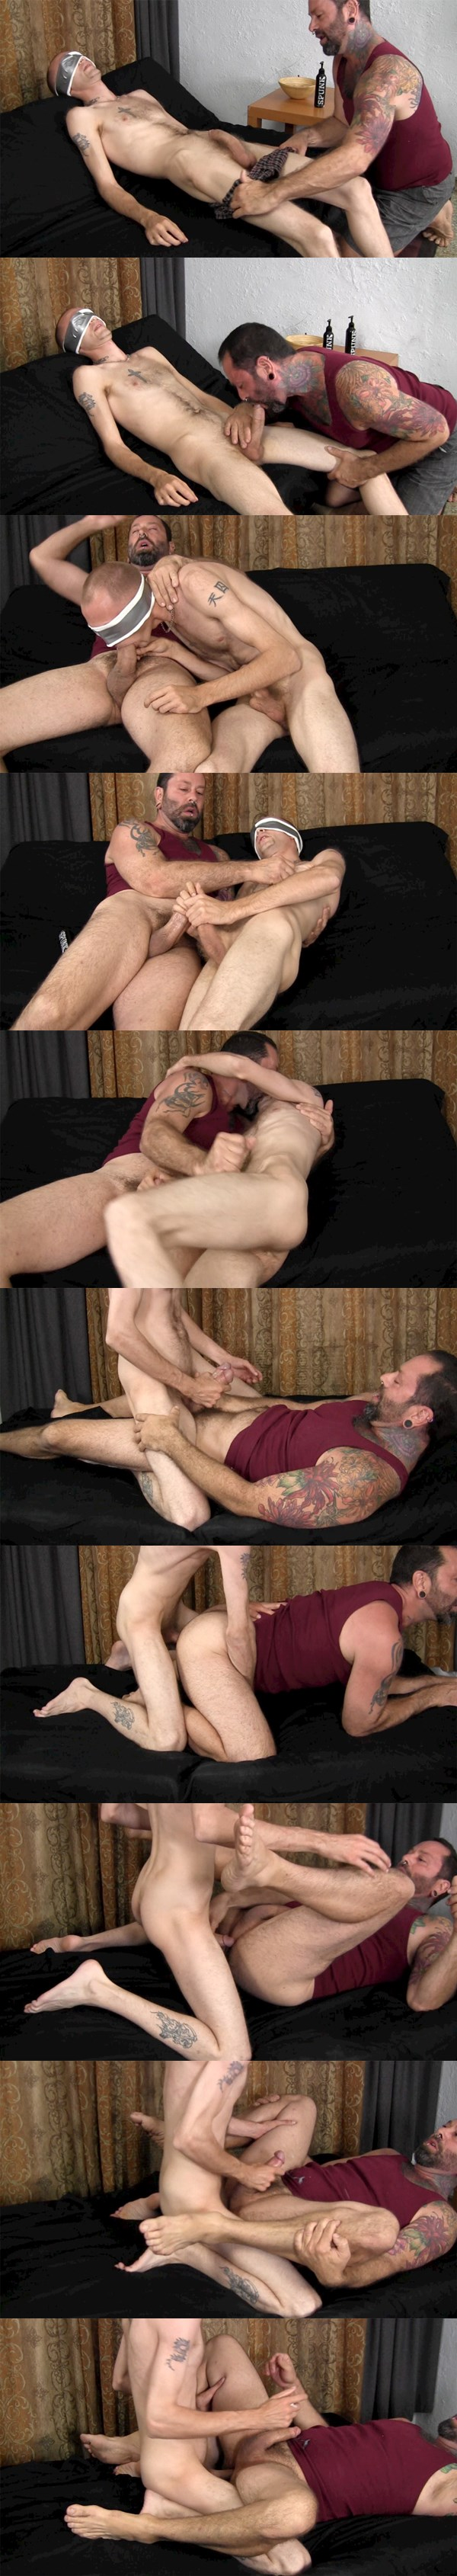 Big-dicked Dee barebacks and creampies pledgemaster Franco at Straightfraternity 02